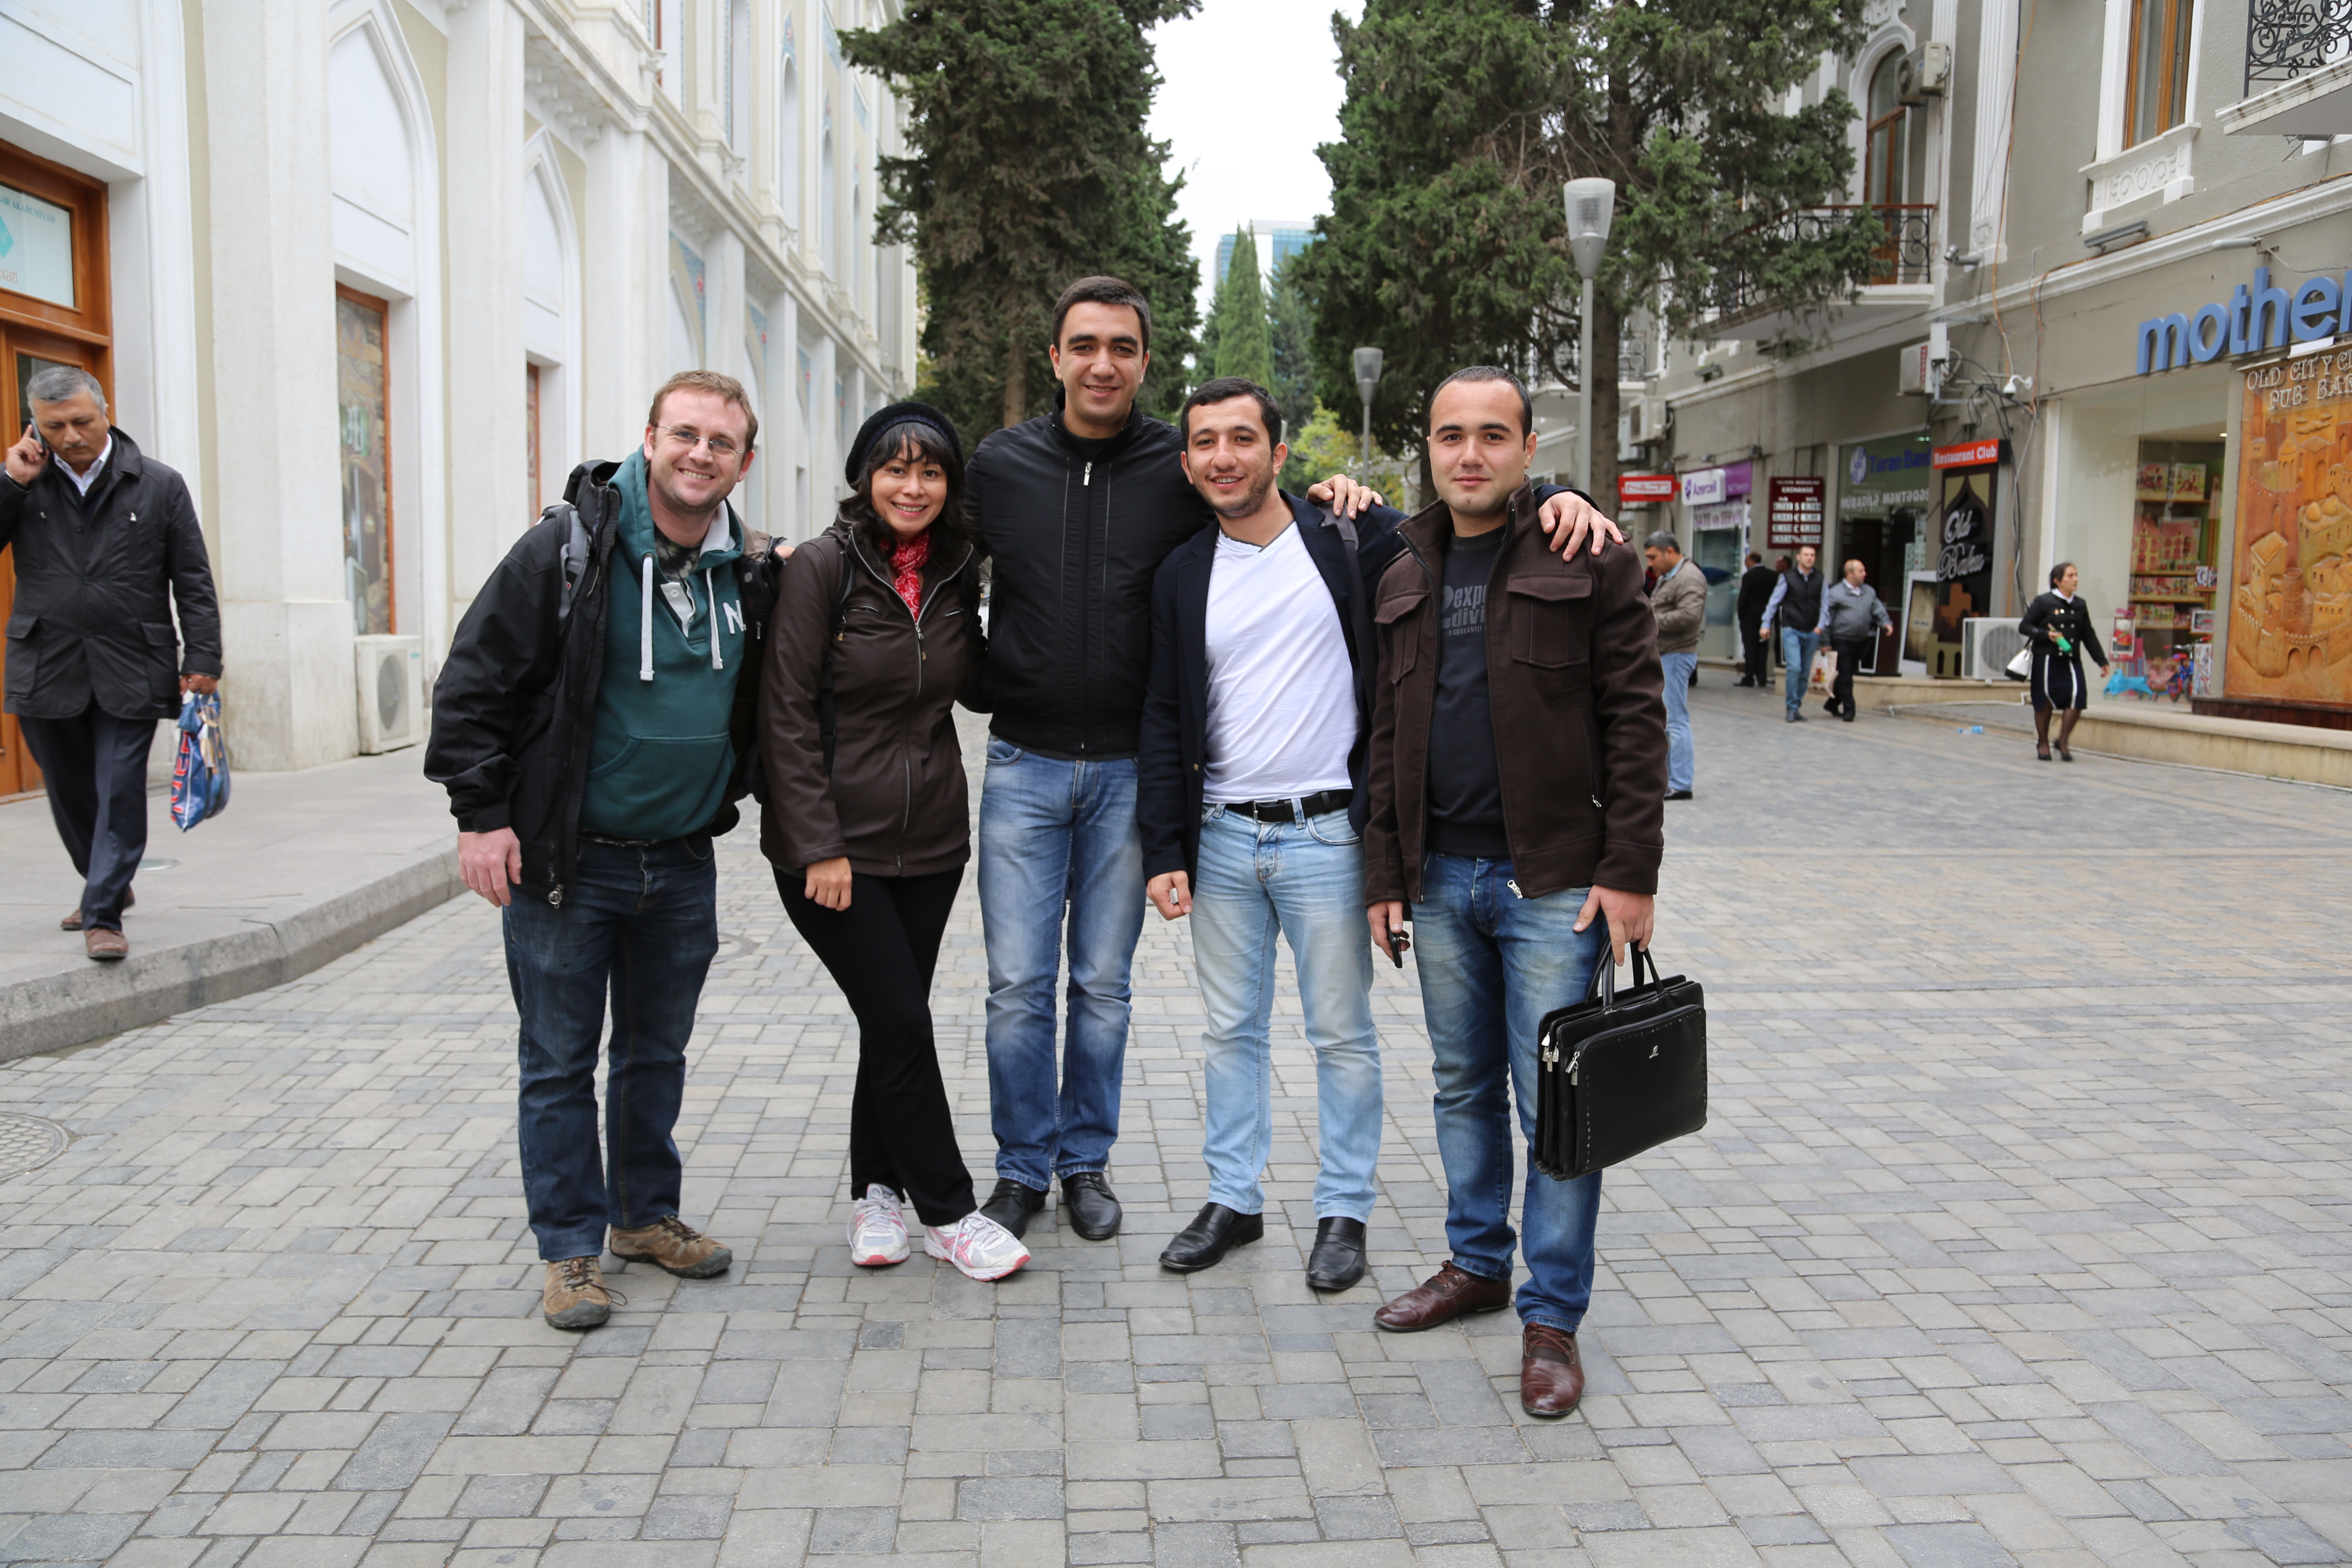 Azerbaijan People Qo Related Searches Qsrc 1